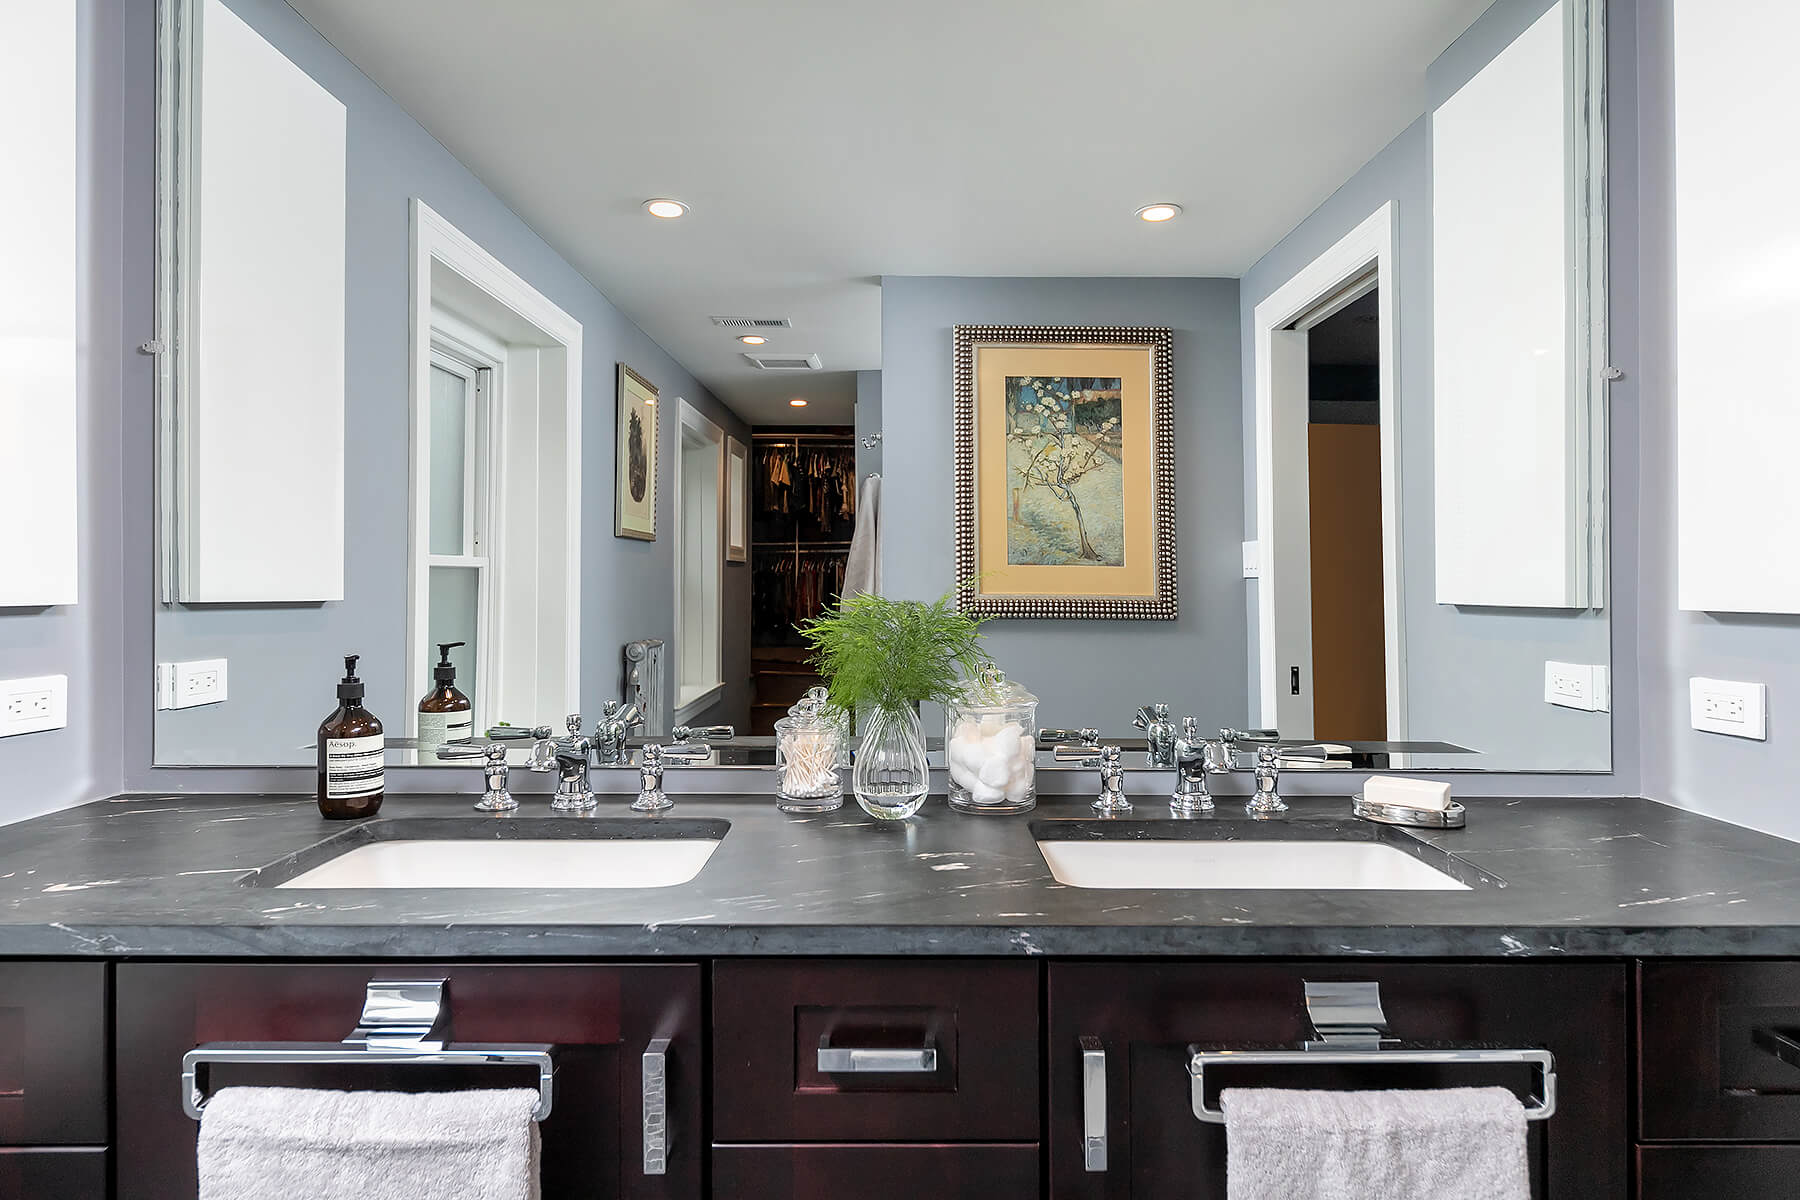 Dark Wood Sink with Large Mirror Above the Gray Counter